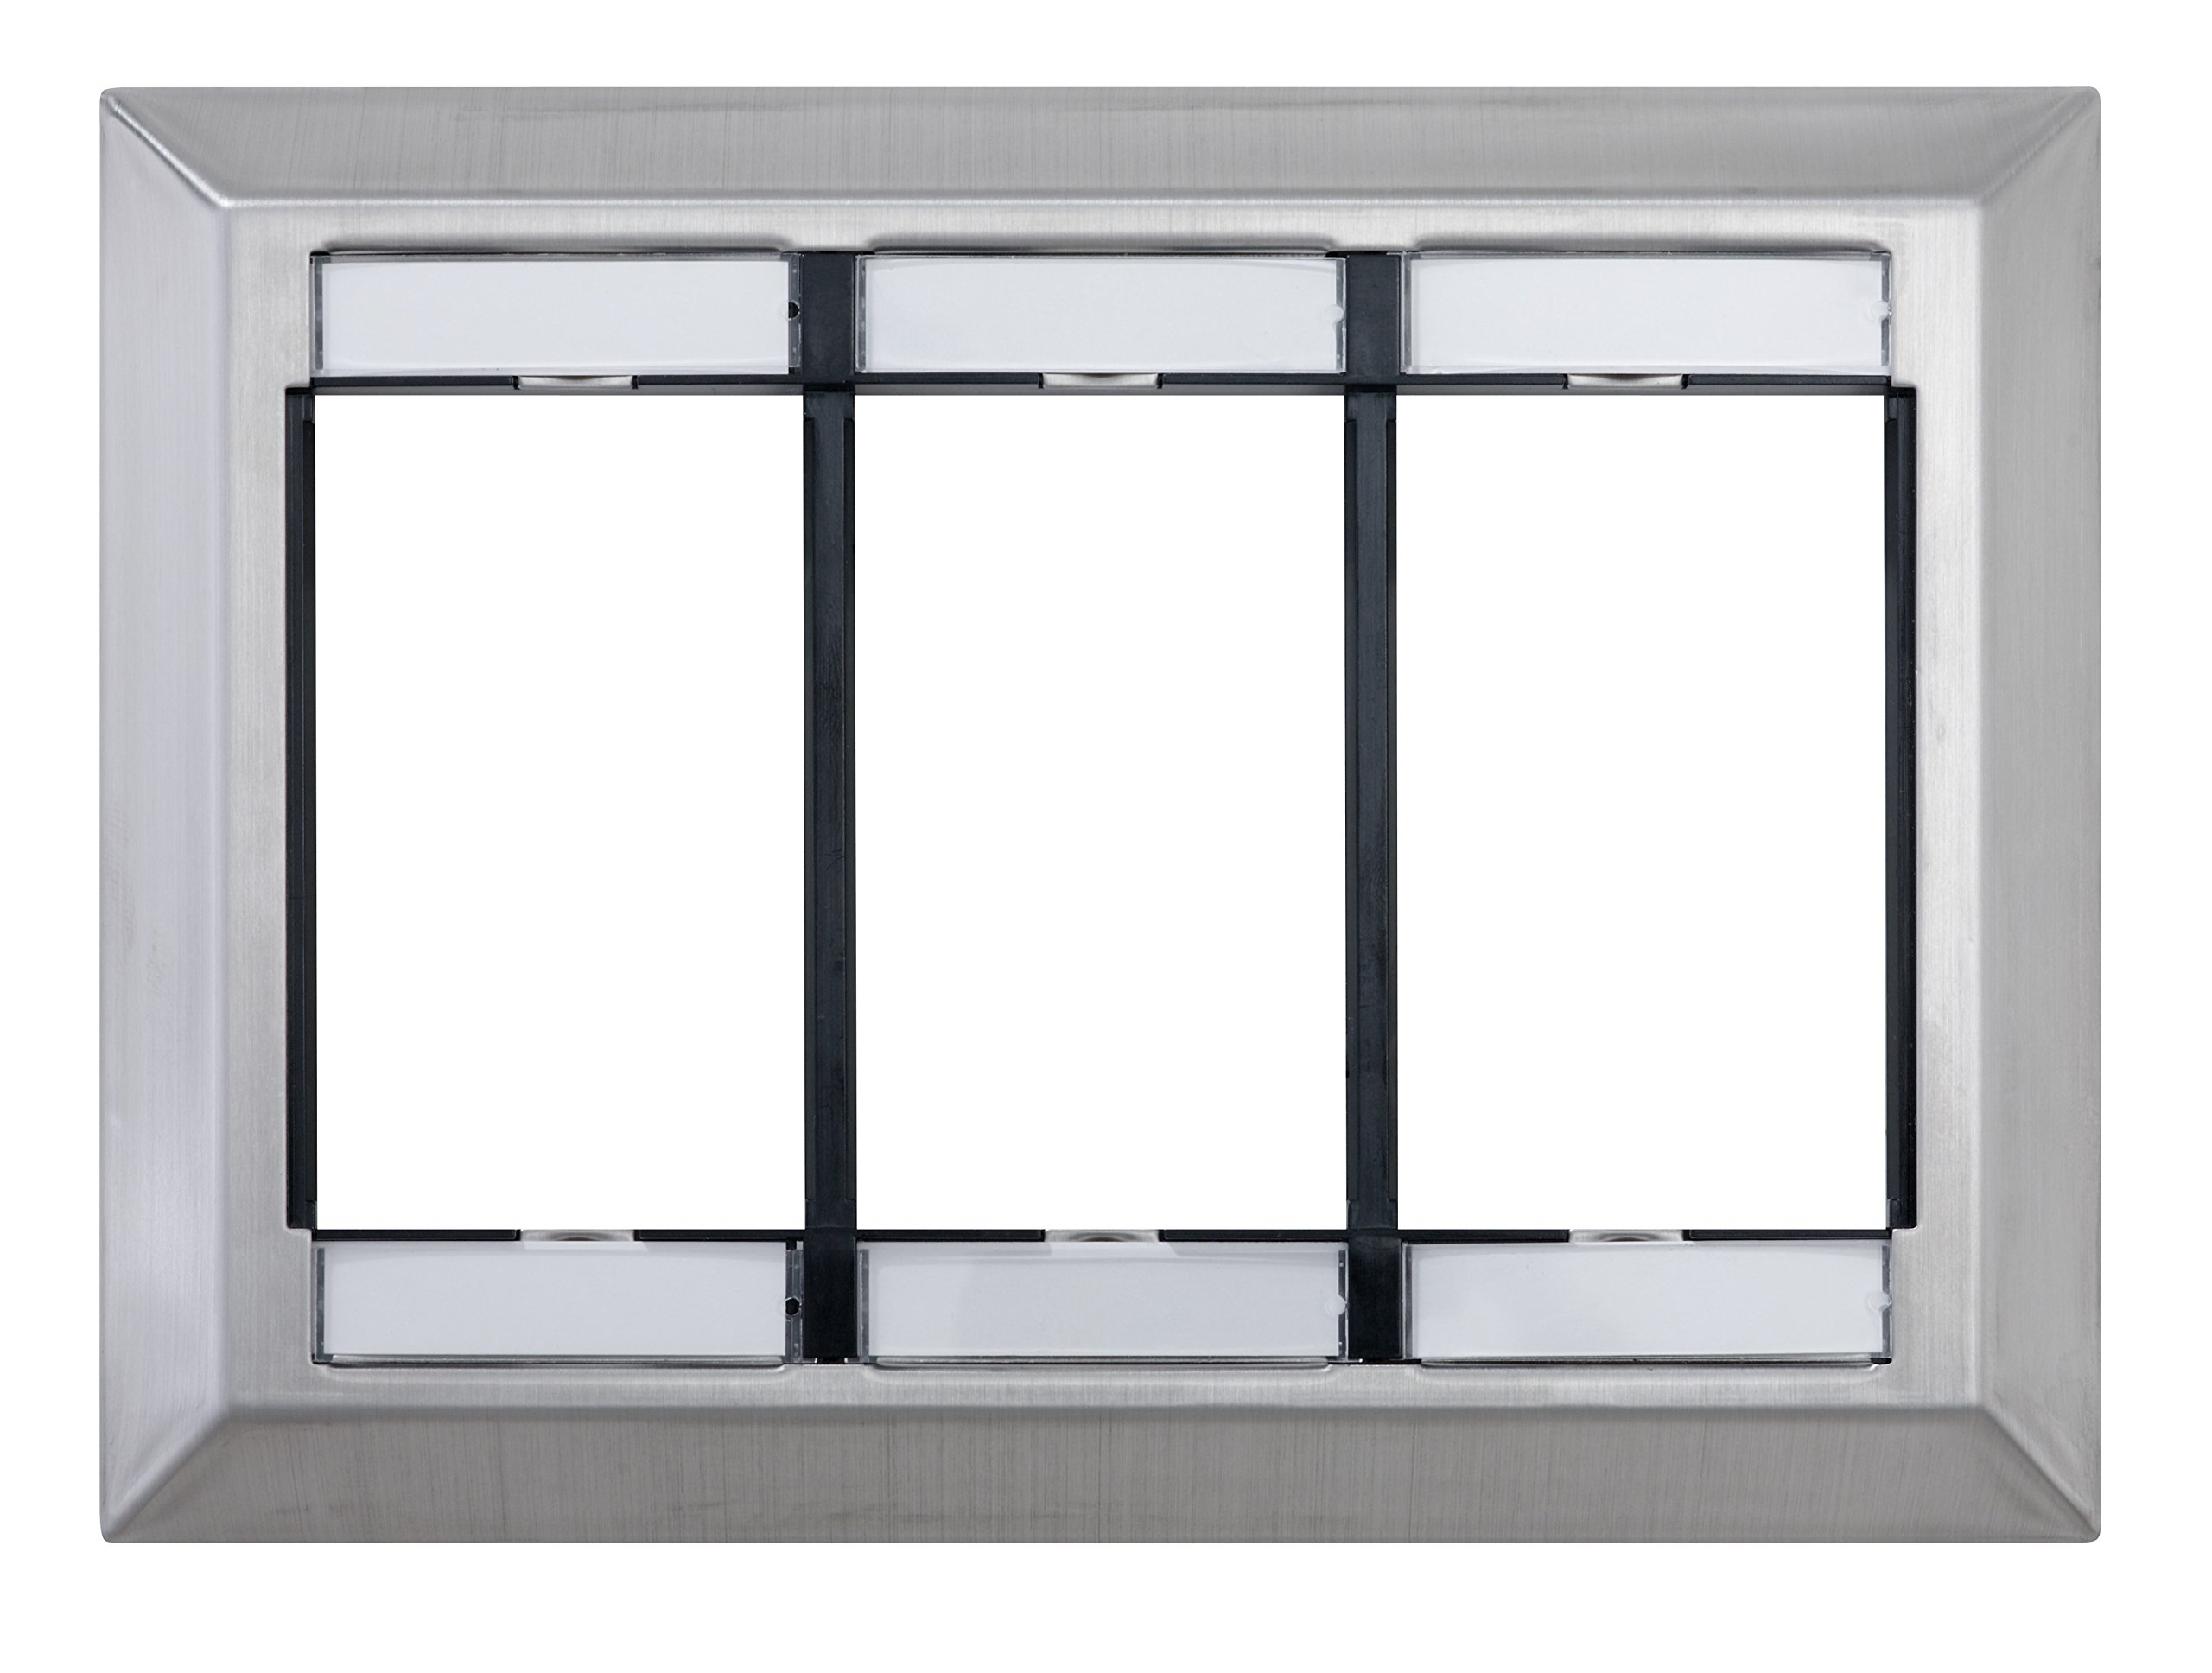 Leviton 41290-TMS Three Gang MOS Wall Plate with ID Windows, Stainless Steel